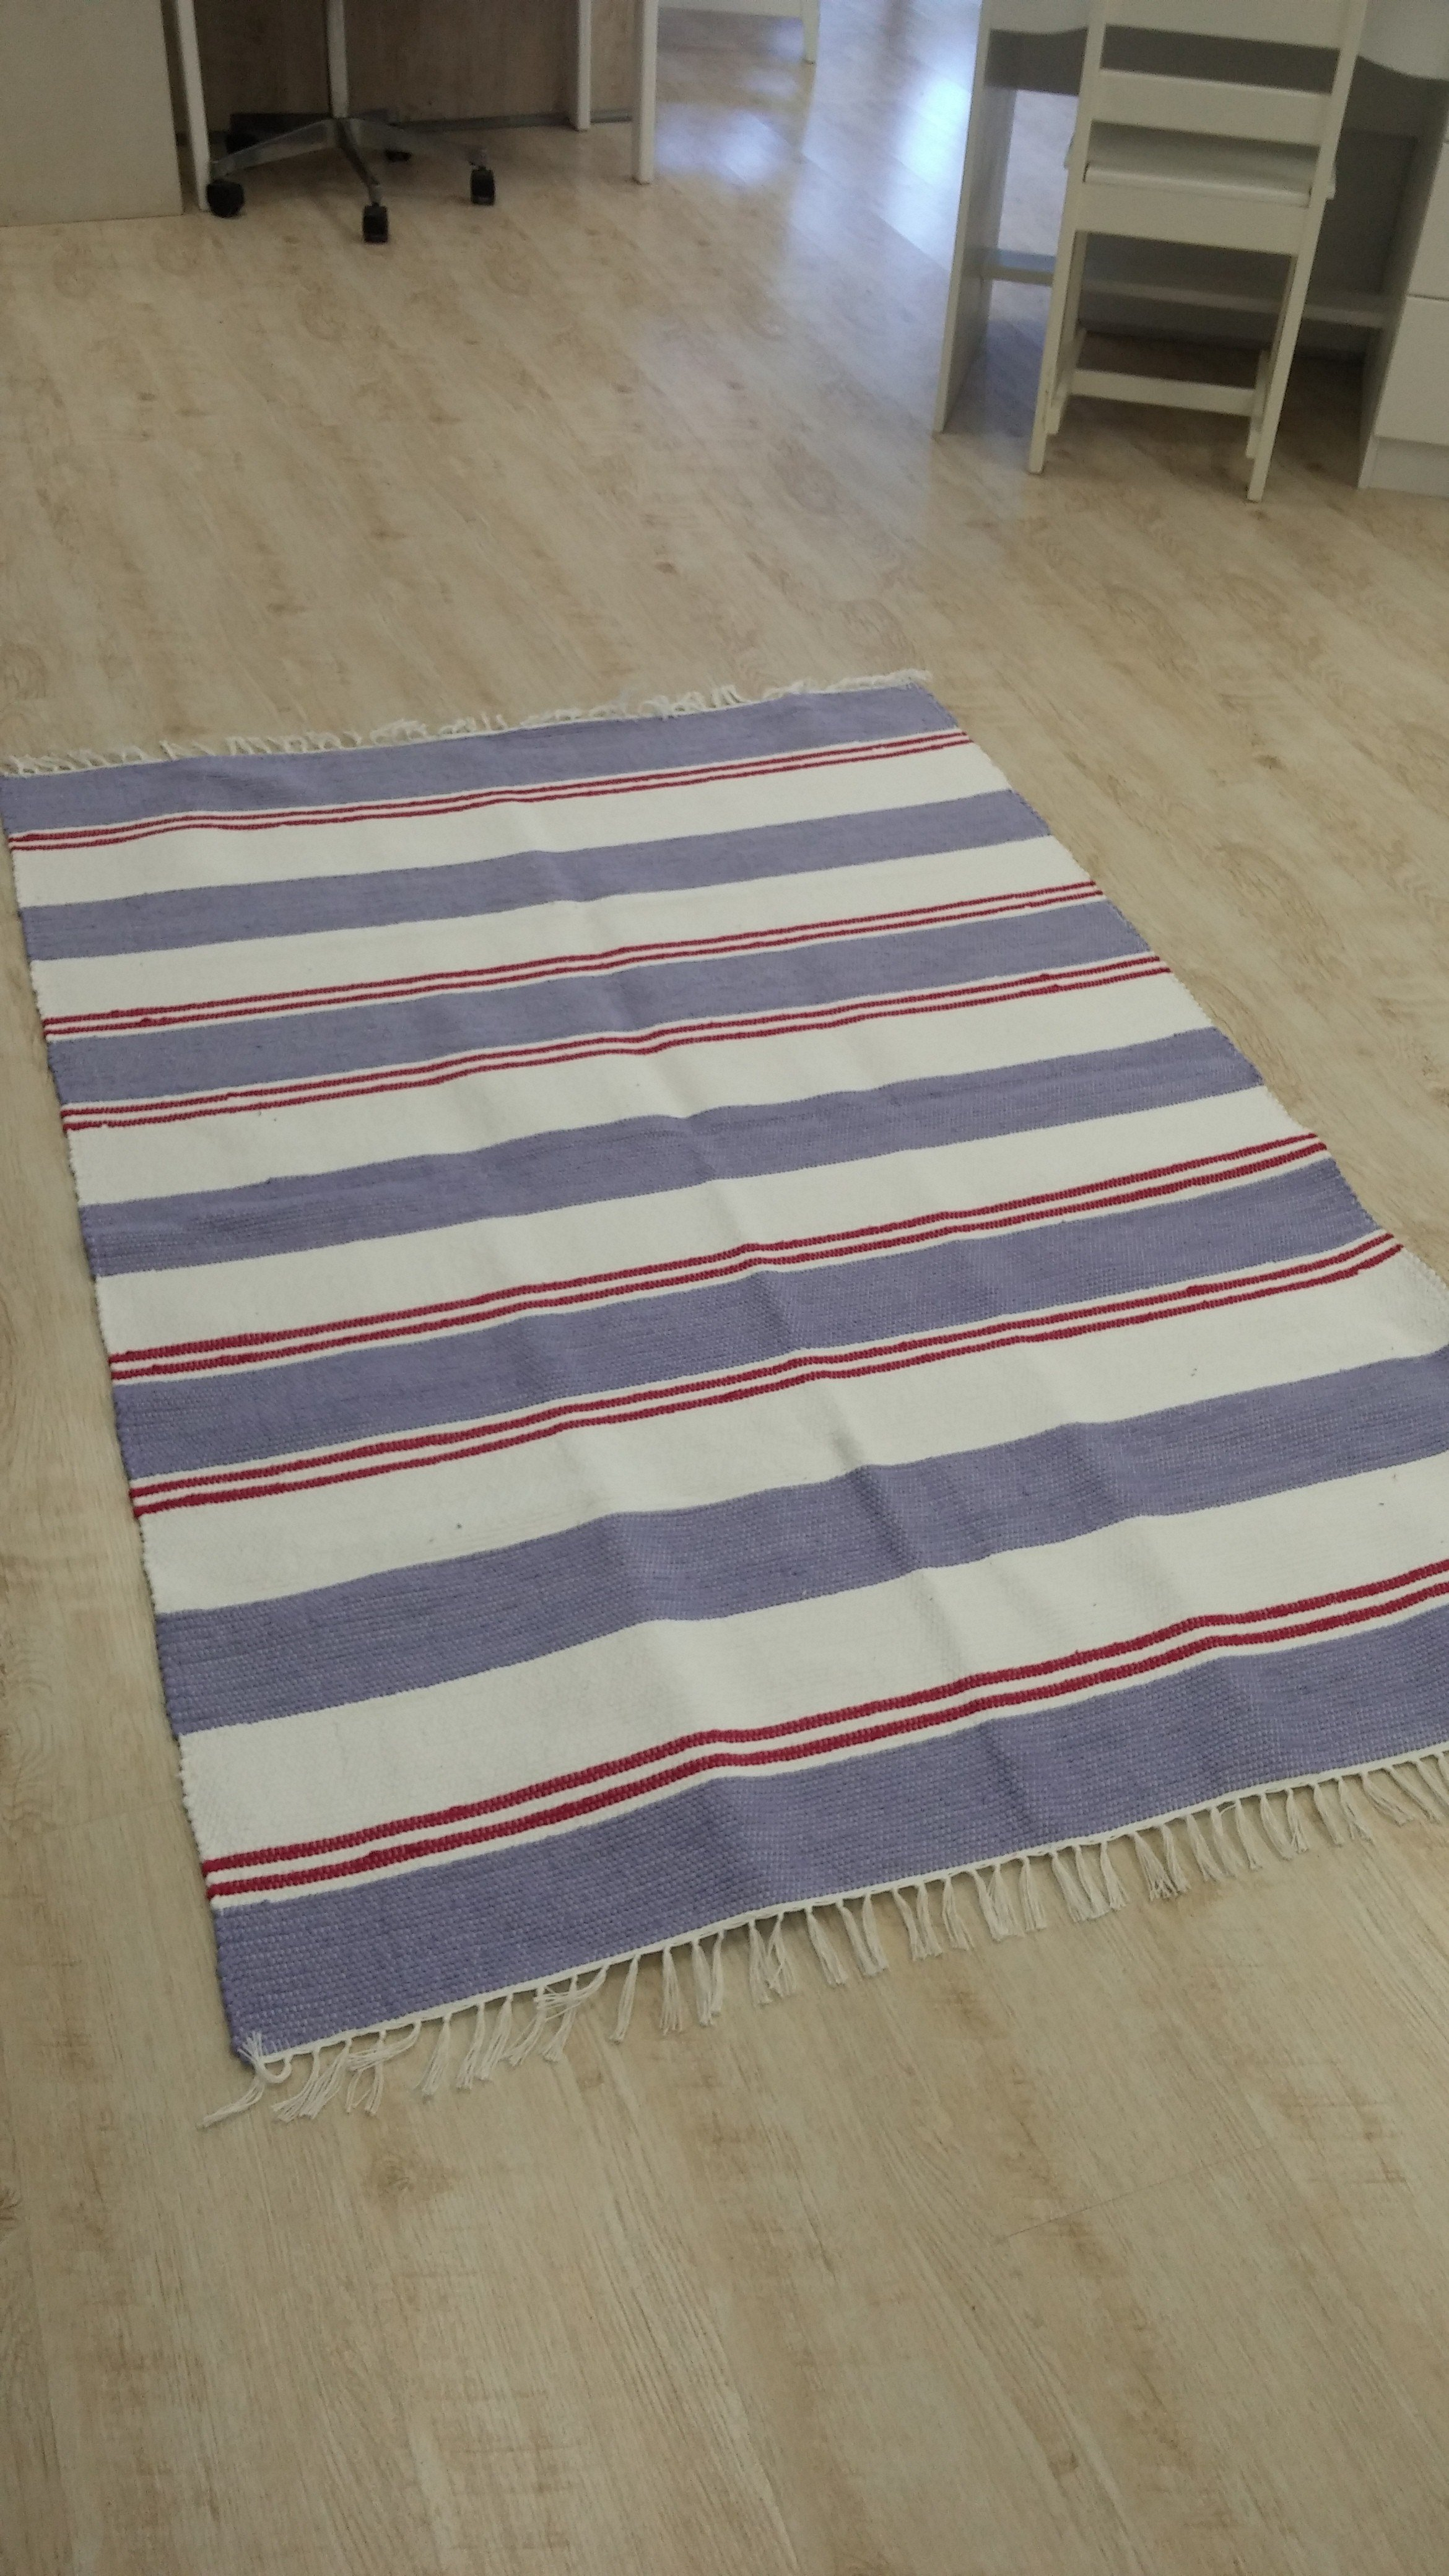 Best Assorted Large Rugs For The Bedroom Floor Kids Cove With Pictures